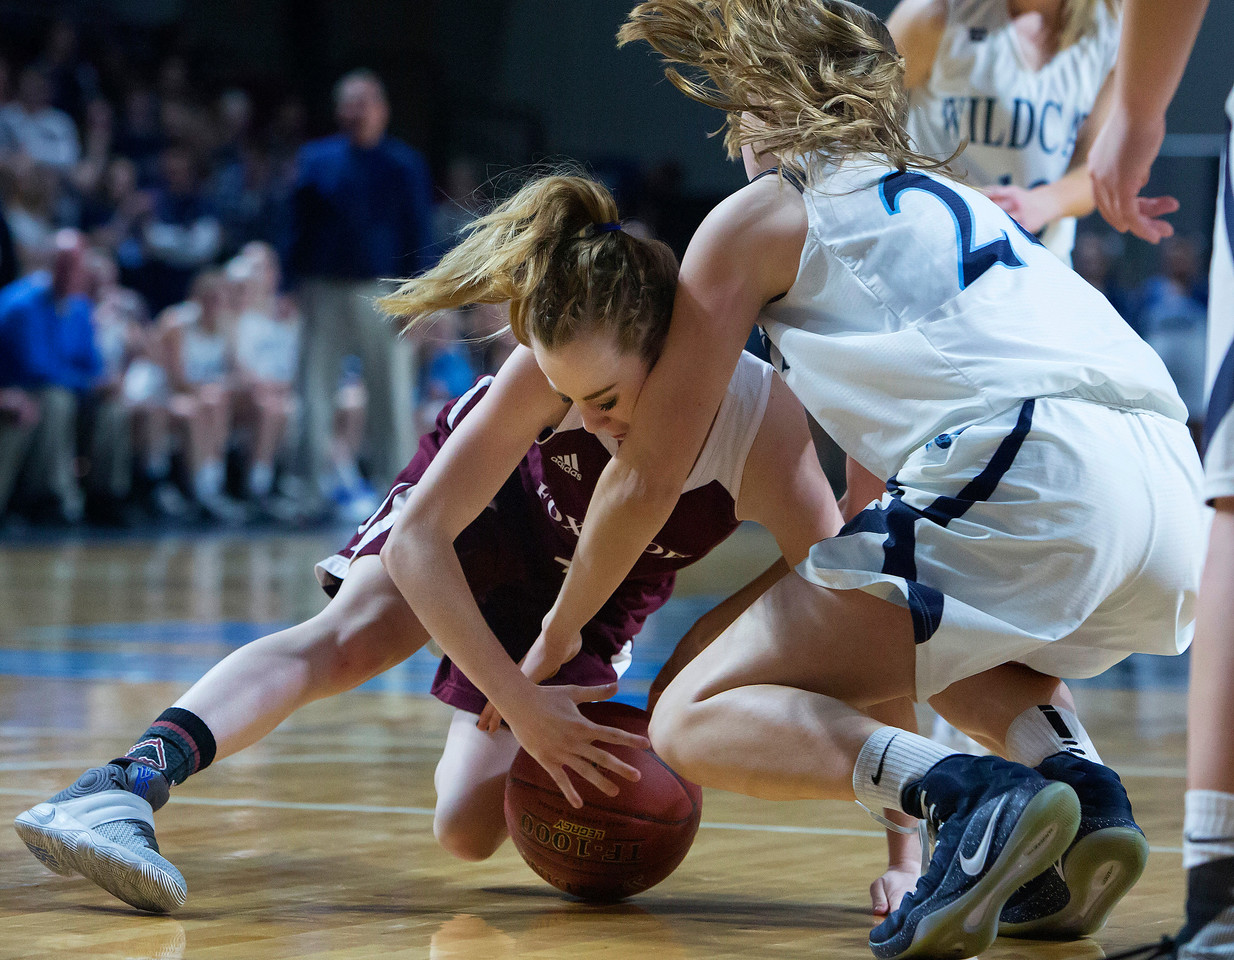 BANGOR, Maine -- 02/22/2017 -- Foxcroft Academy's Alli Bourget (left) dives on a loose ball against Presque Isle's Meg E. Boone during their Class B girls basketball semifinal game at the Cross Insurance Center in Bangor Wednesday. Ashley L. Conti   BDN